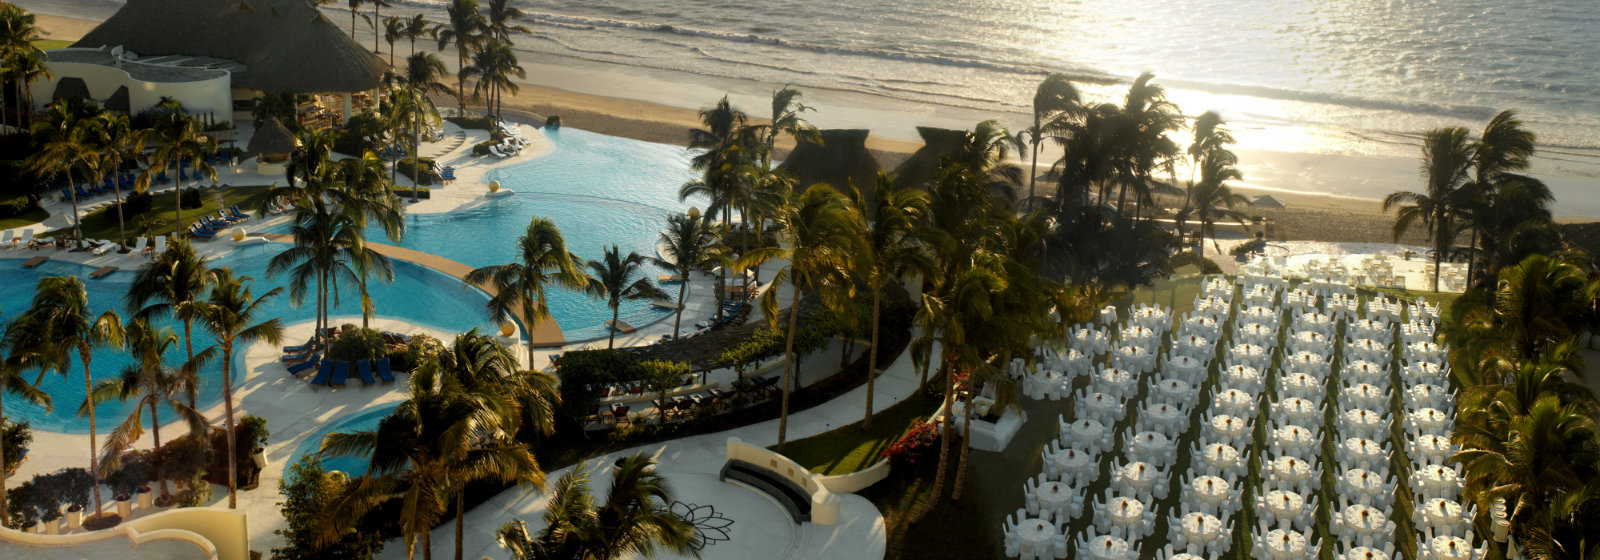 Meetings Venues in Grand Velas Riviera Nayarit